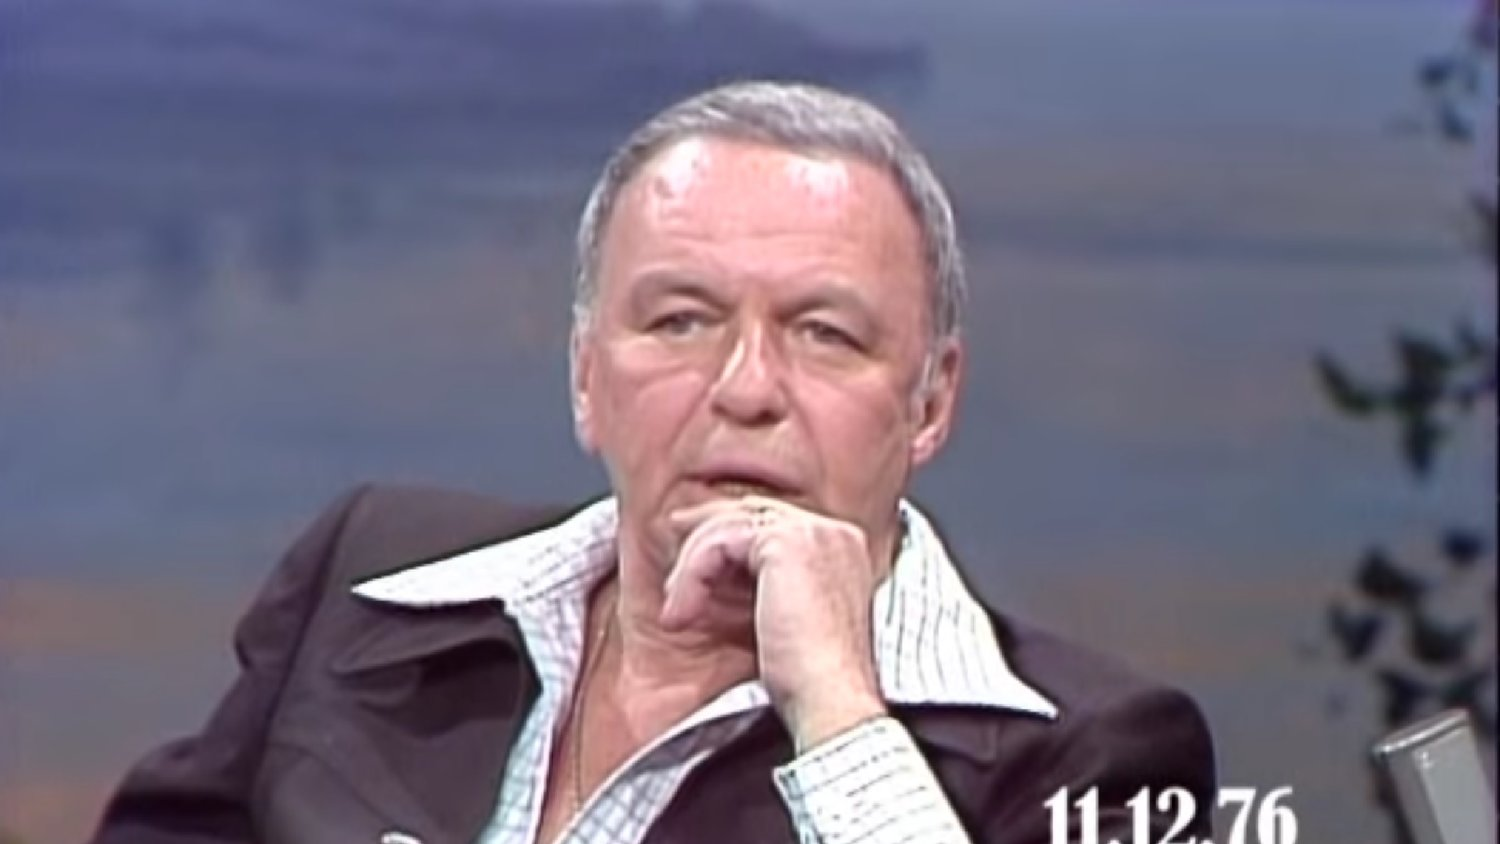 Watch: Frank Sinatra Tells Hilarious Story About Don Rickles